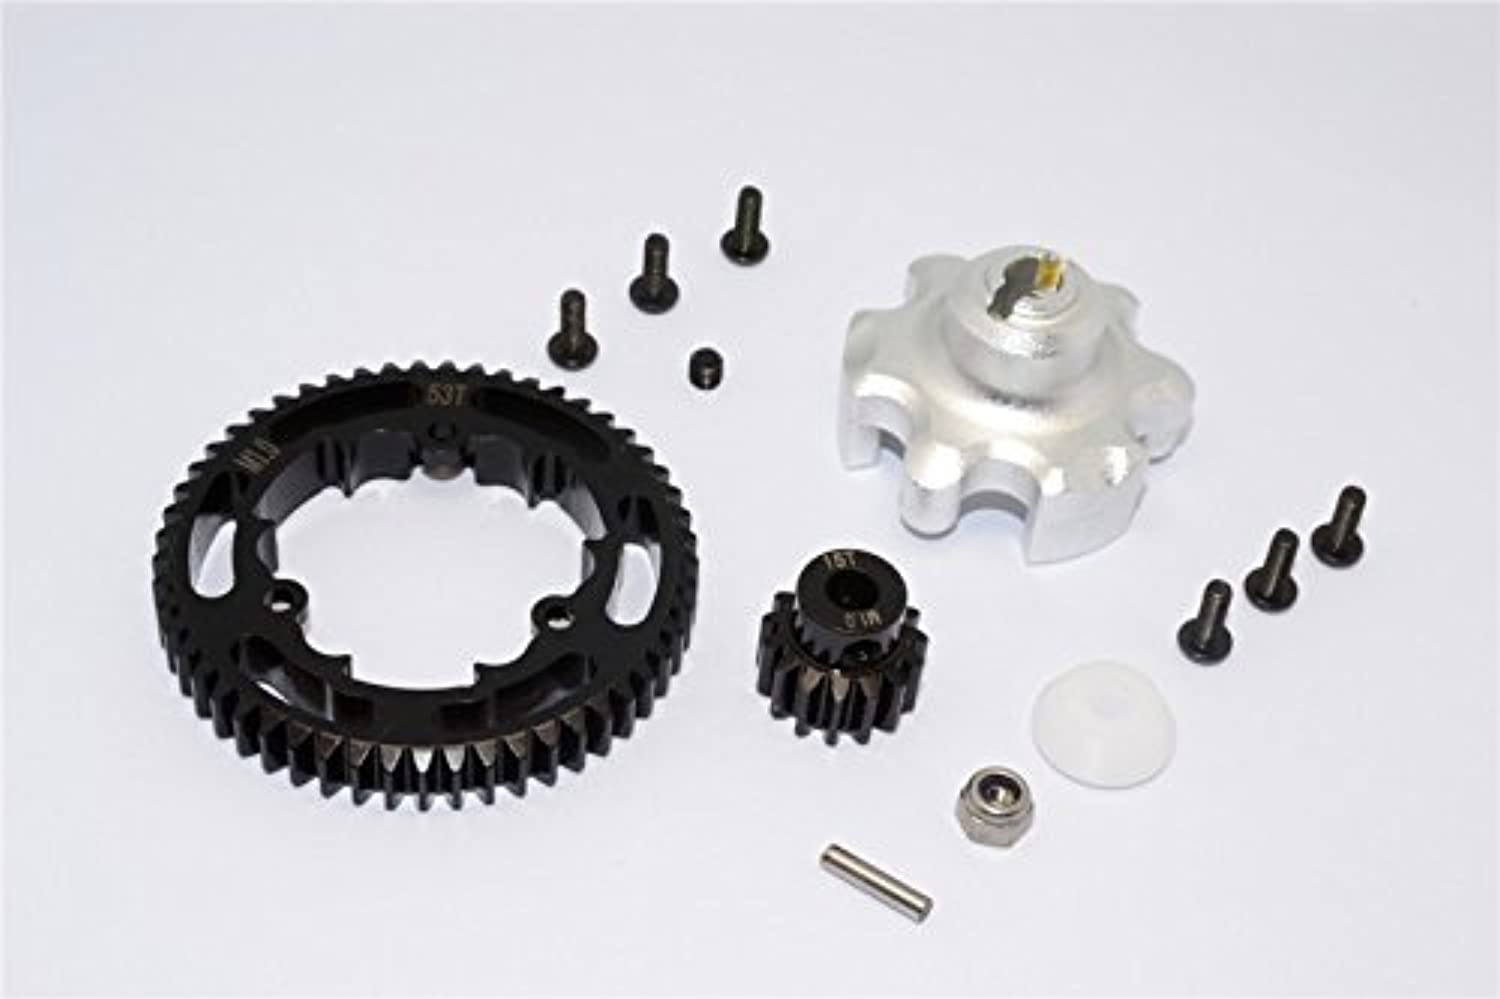 Traxxas XMaxx 4X4 Tuning Teile Aluminium Gear Adapter + Steel Spur Gear 53T + Motor Gear 15T (For XMaxx 6S Only)  1 Set Silver